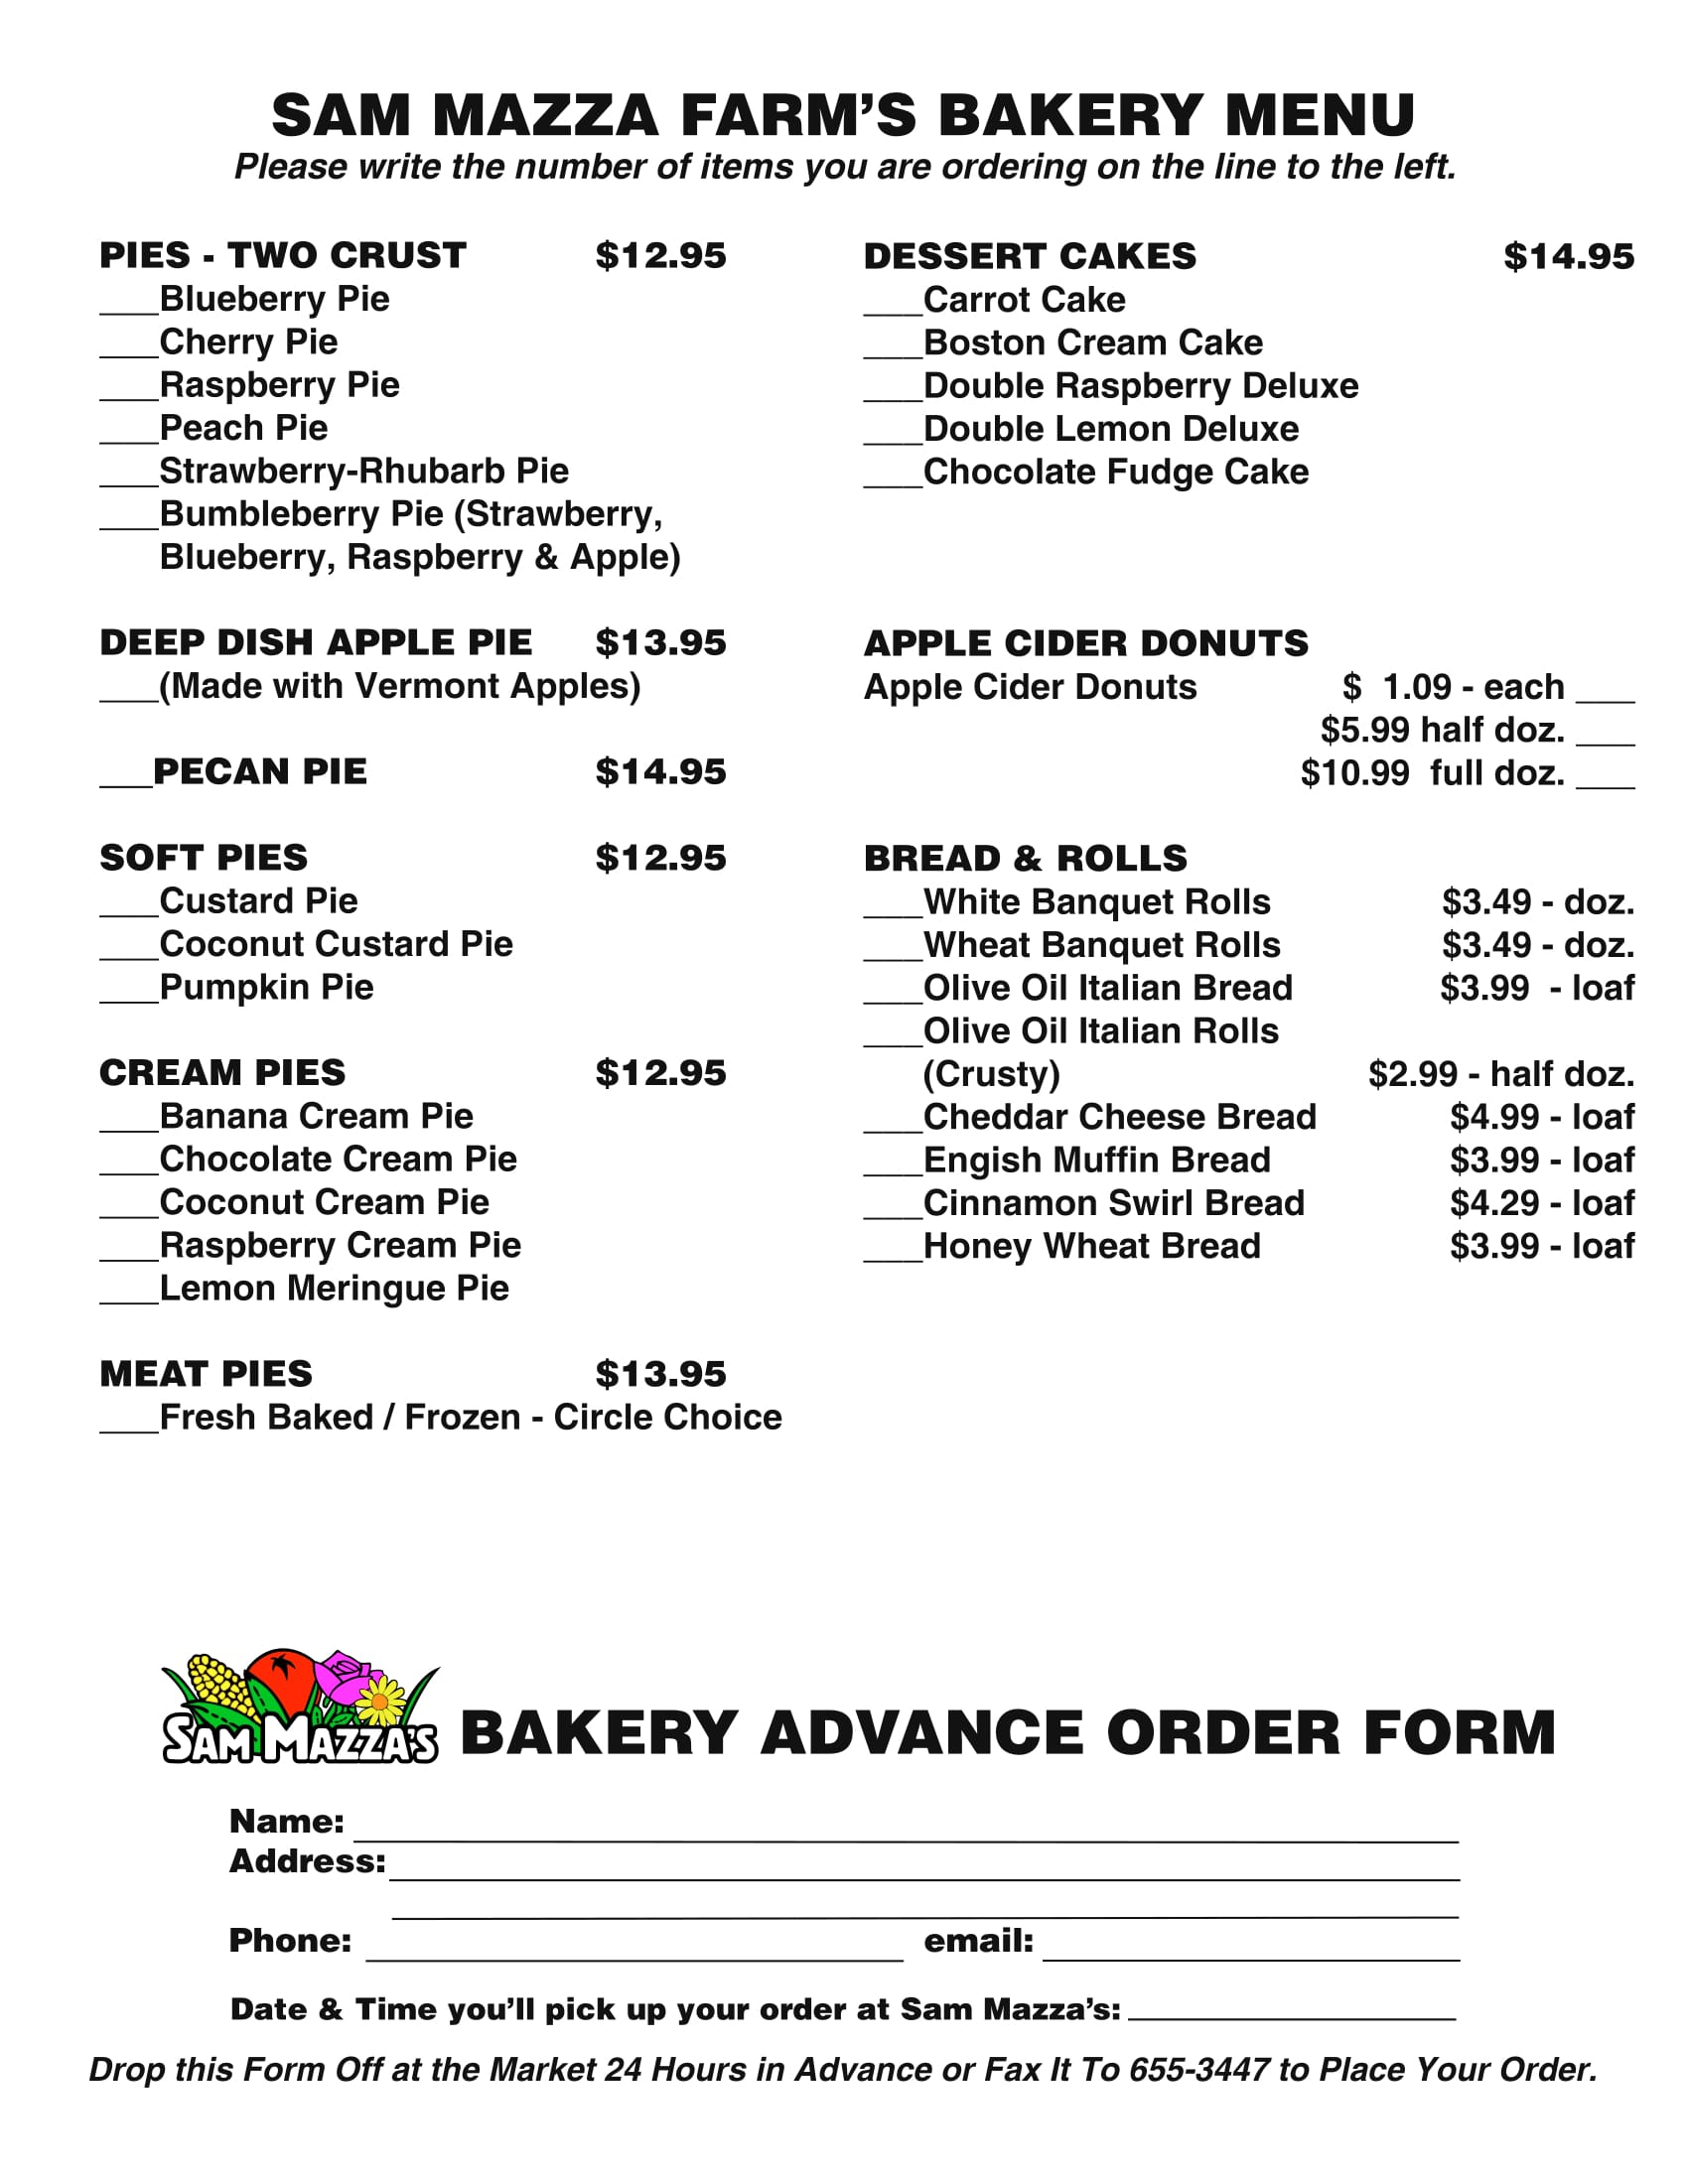 bakery menu order form 1